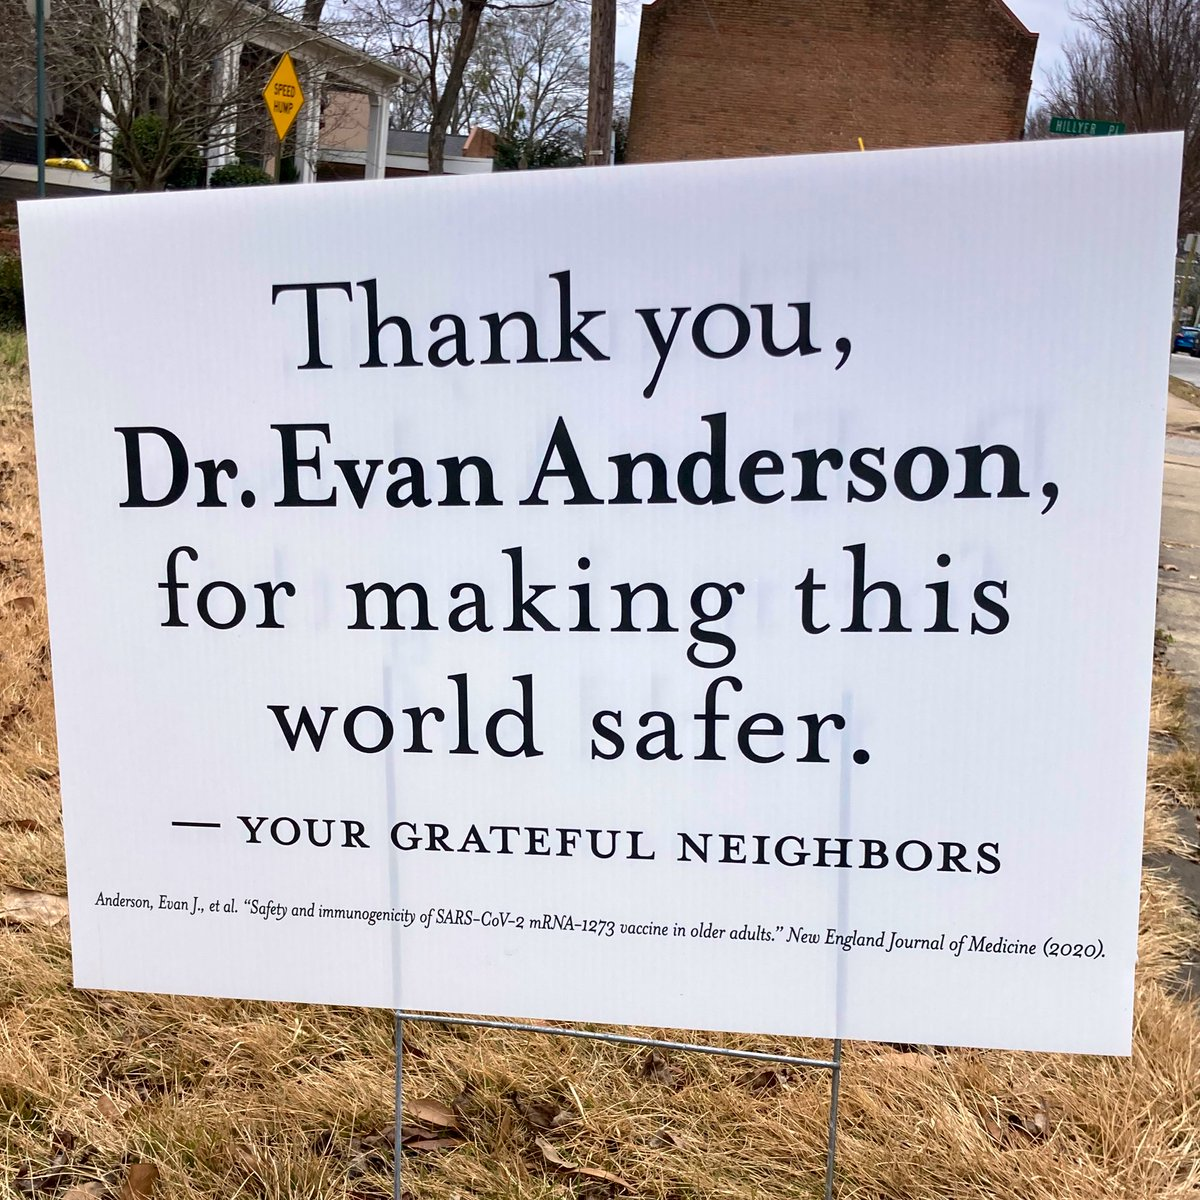 I've seen a lot of different yard signs this year, but this one is my favorite. Thank you Dr. Anderson! And thank you to his neighbors for properly citing his research! #research #footnotes #academia #Science #gratitude #citations #AcademicTwitter #MedicalTwitter